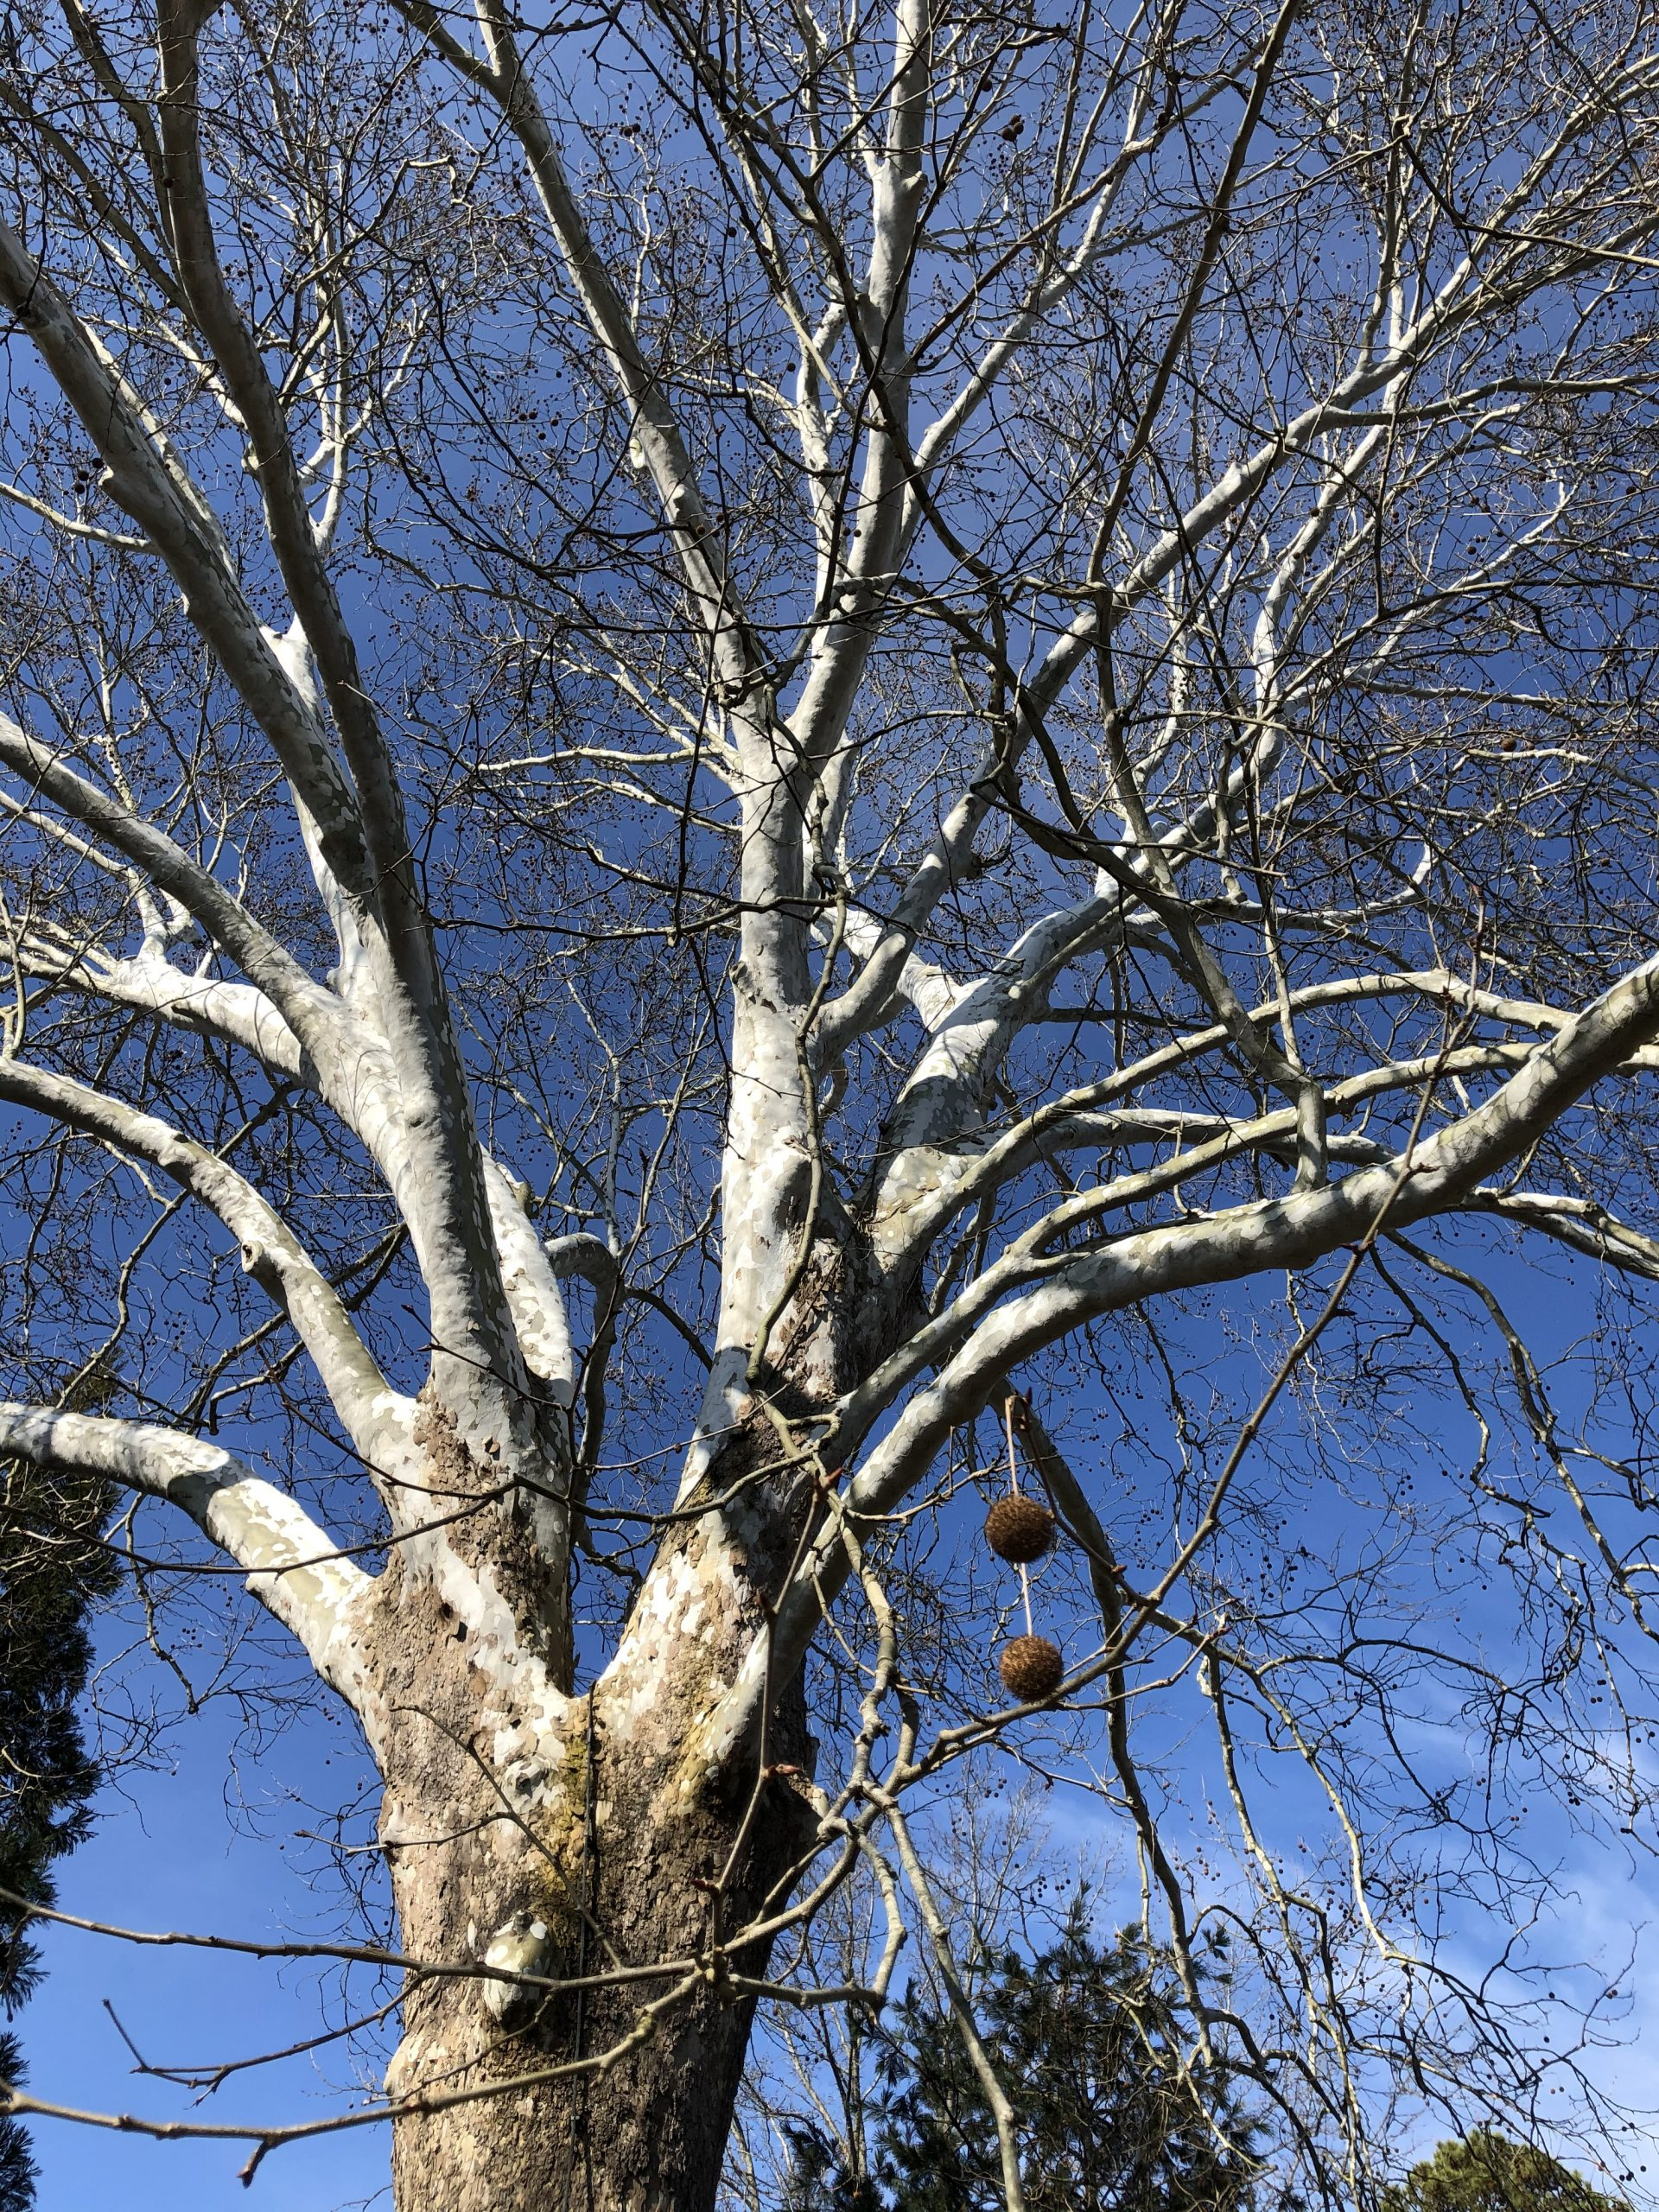 Sycamore or Platanus occidentalis at Lewis Ginter Botanical Garden with fruit winter tree ID